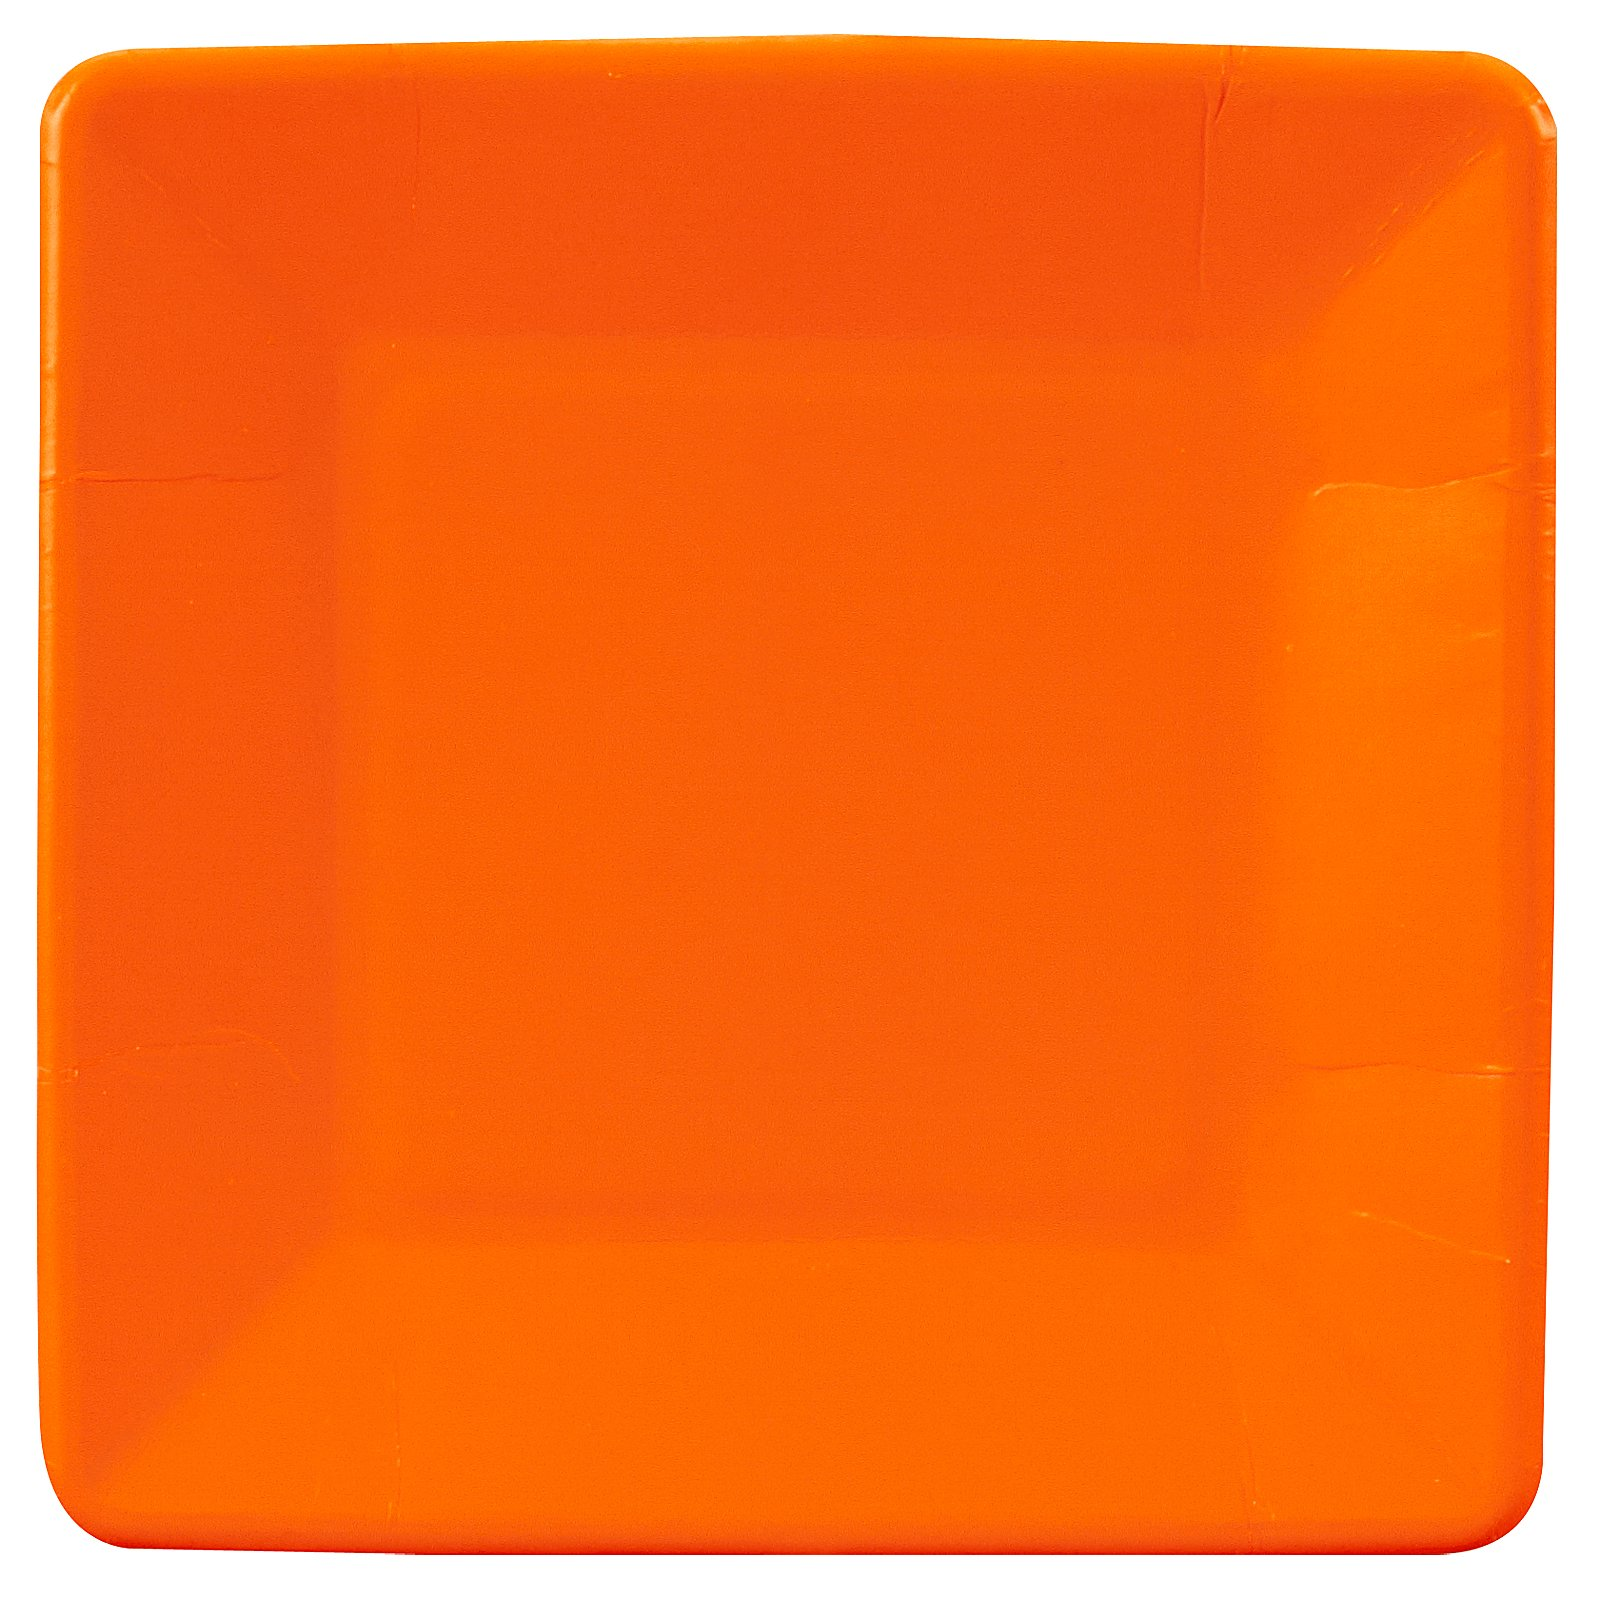 Sunkissed Orange (Orange) Square Dessert Plates (18 count)